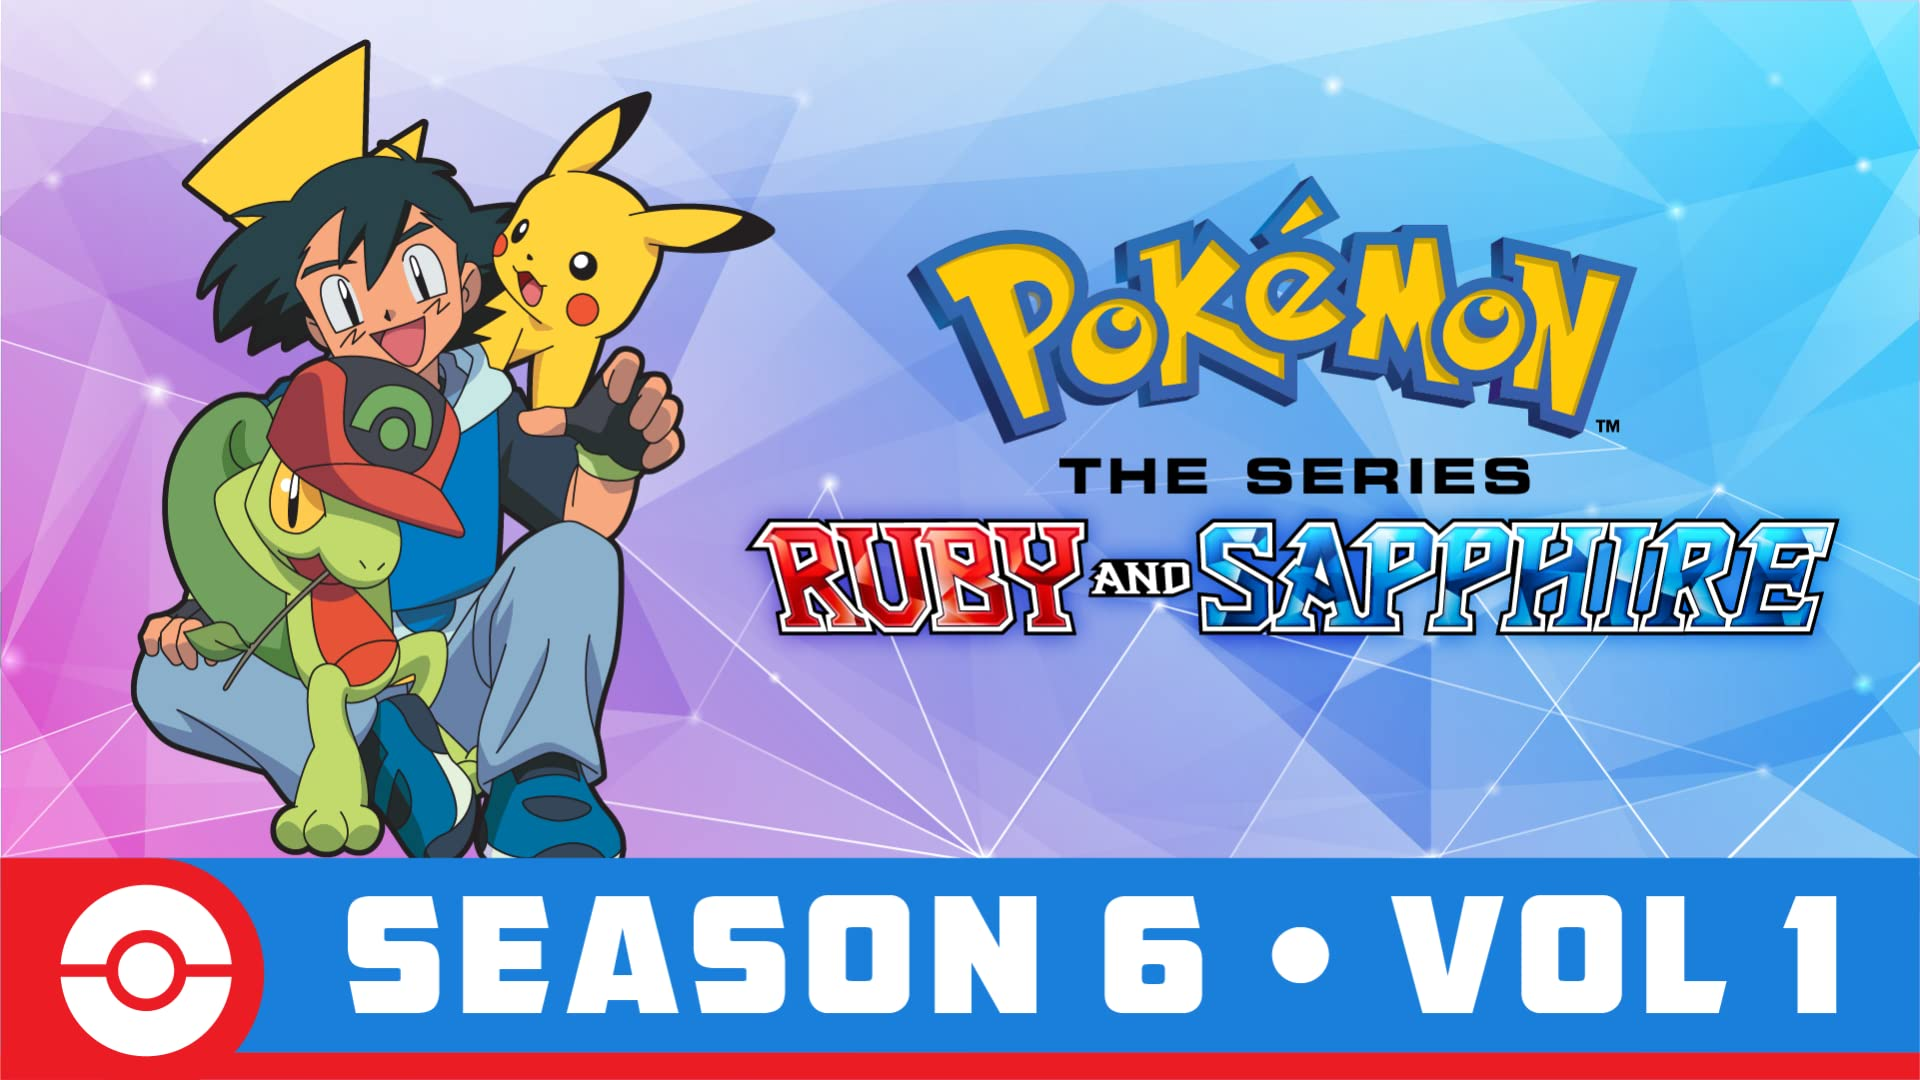 Pokémon the Series: Ruby & Sapphire